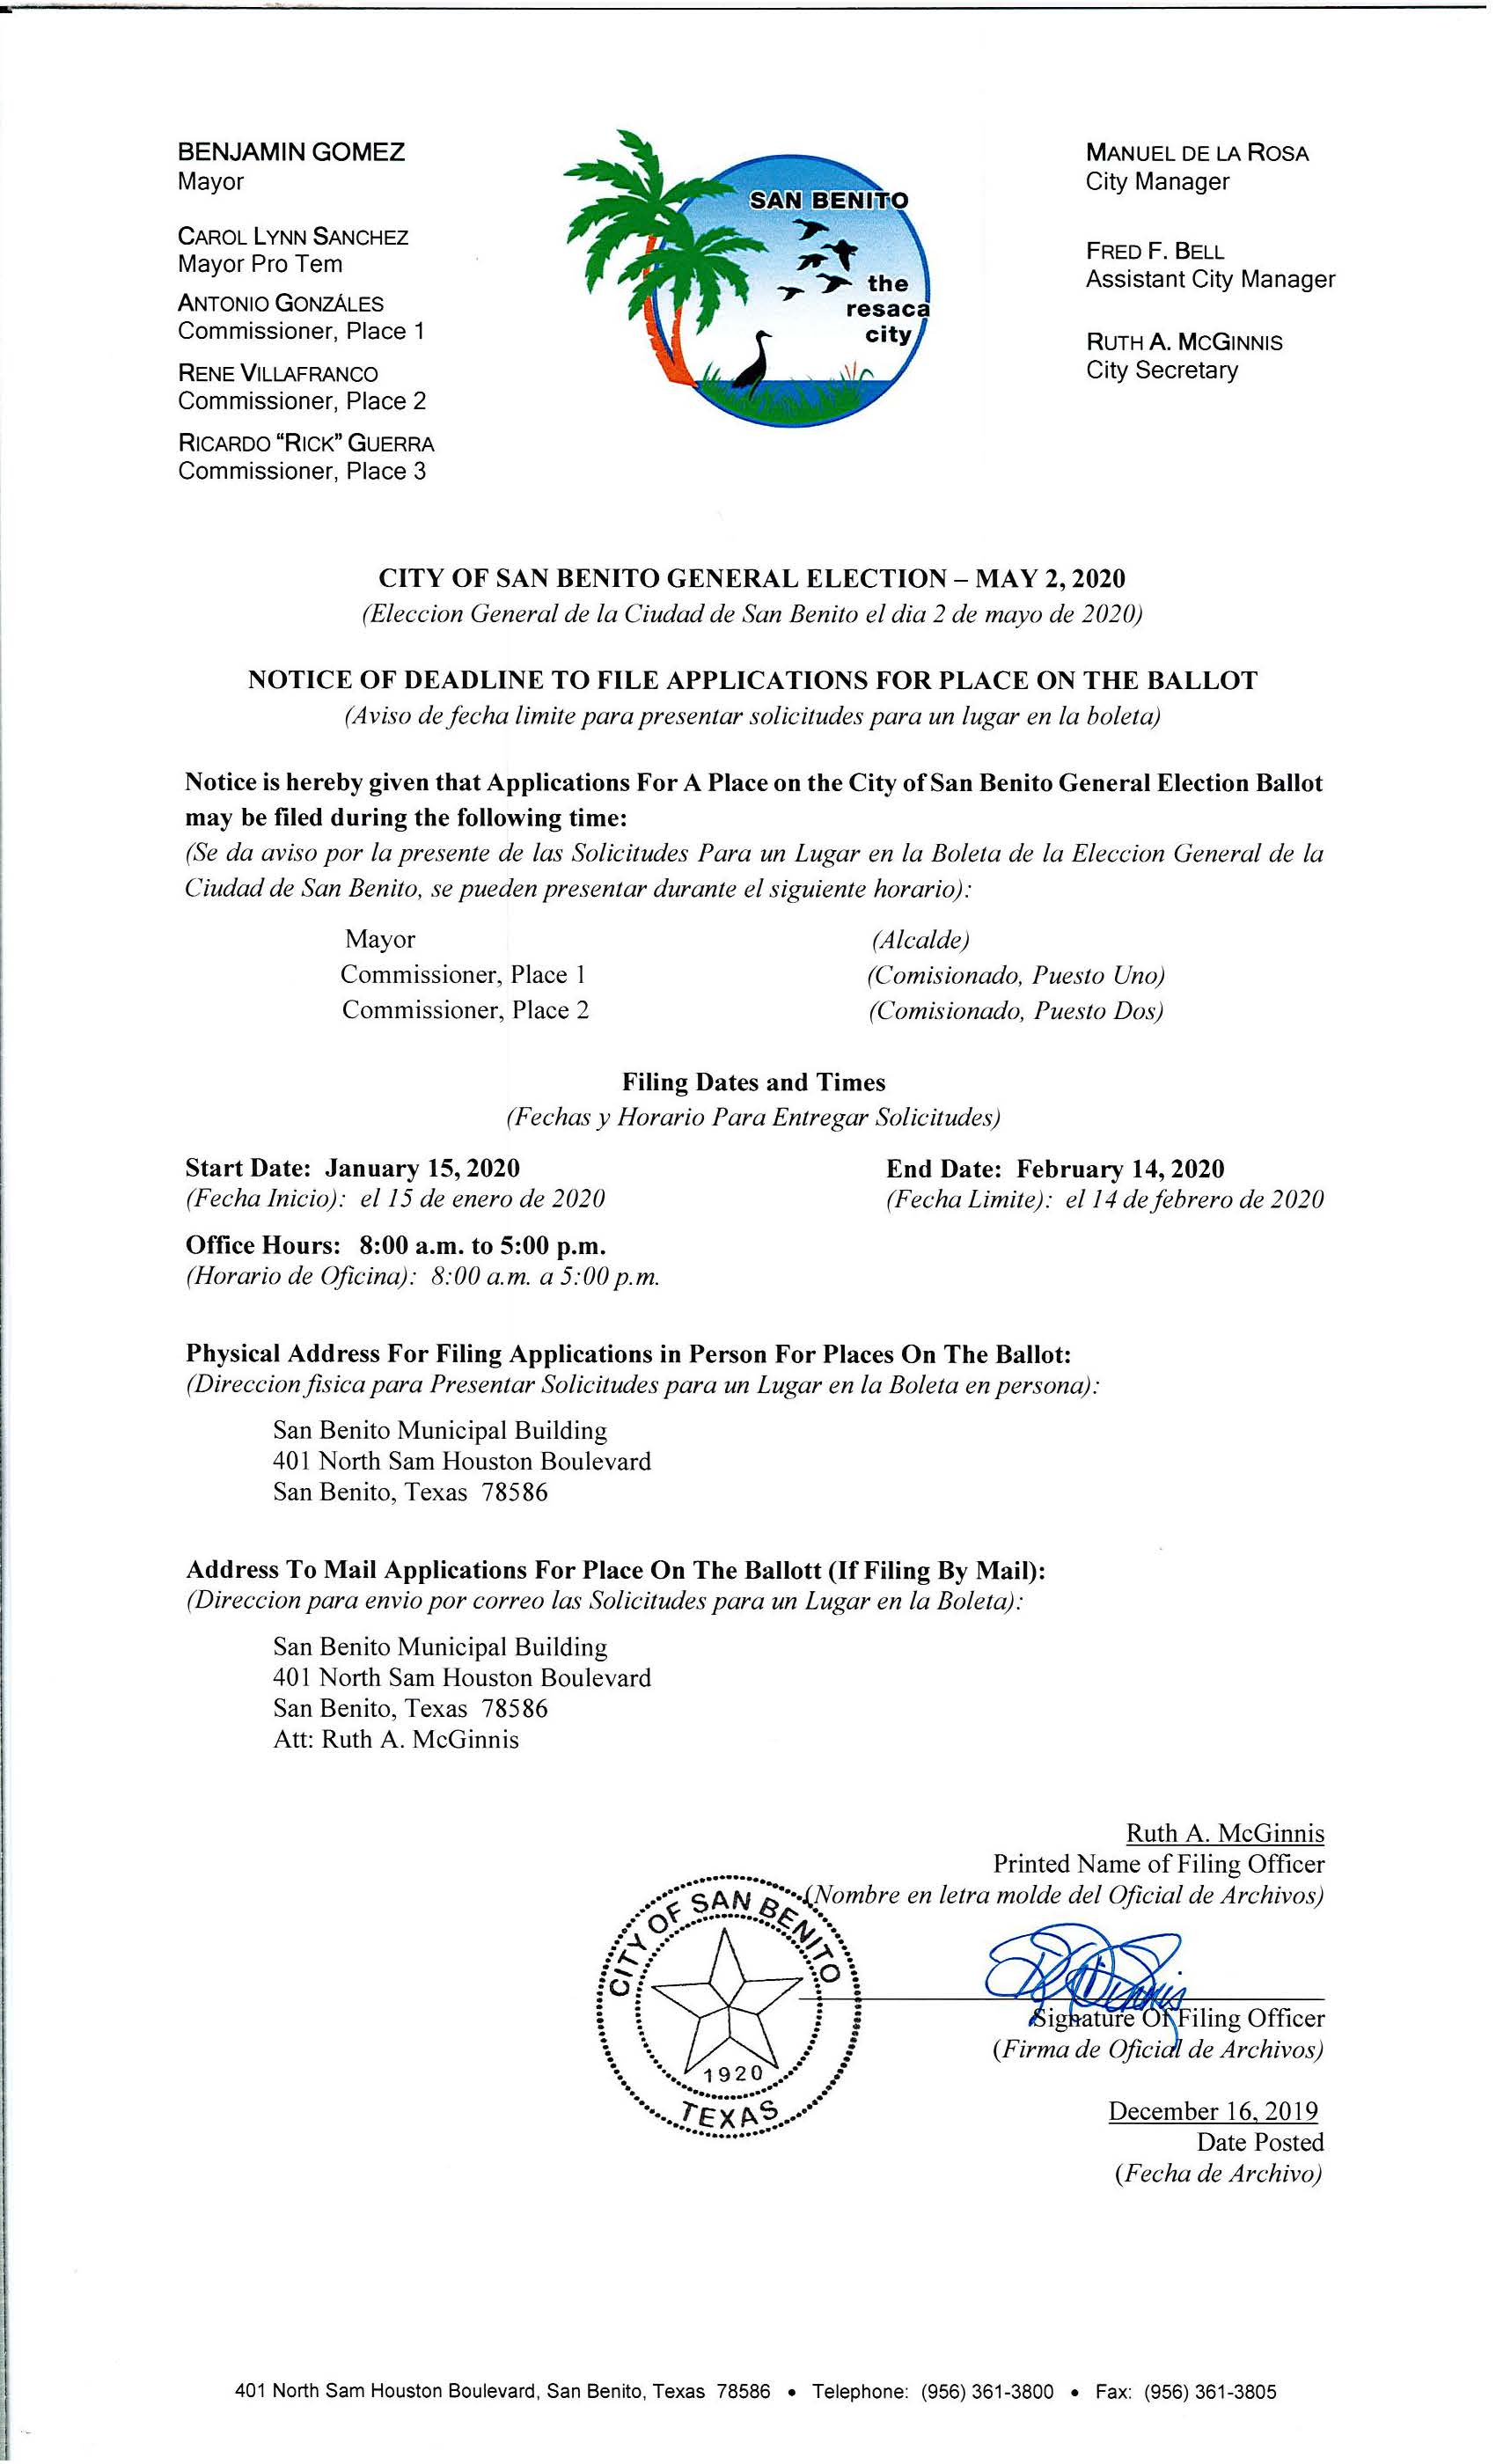 Notice of Deadline to File Apps For Place on Ballot Posted 12.16.2019